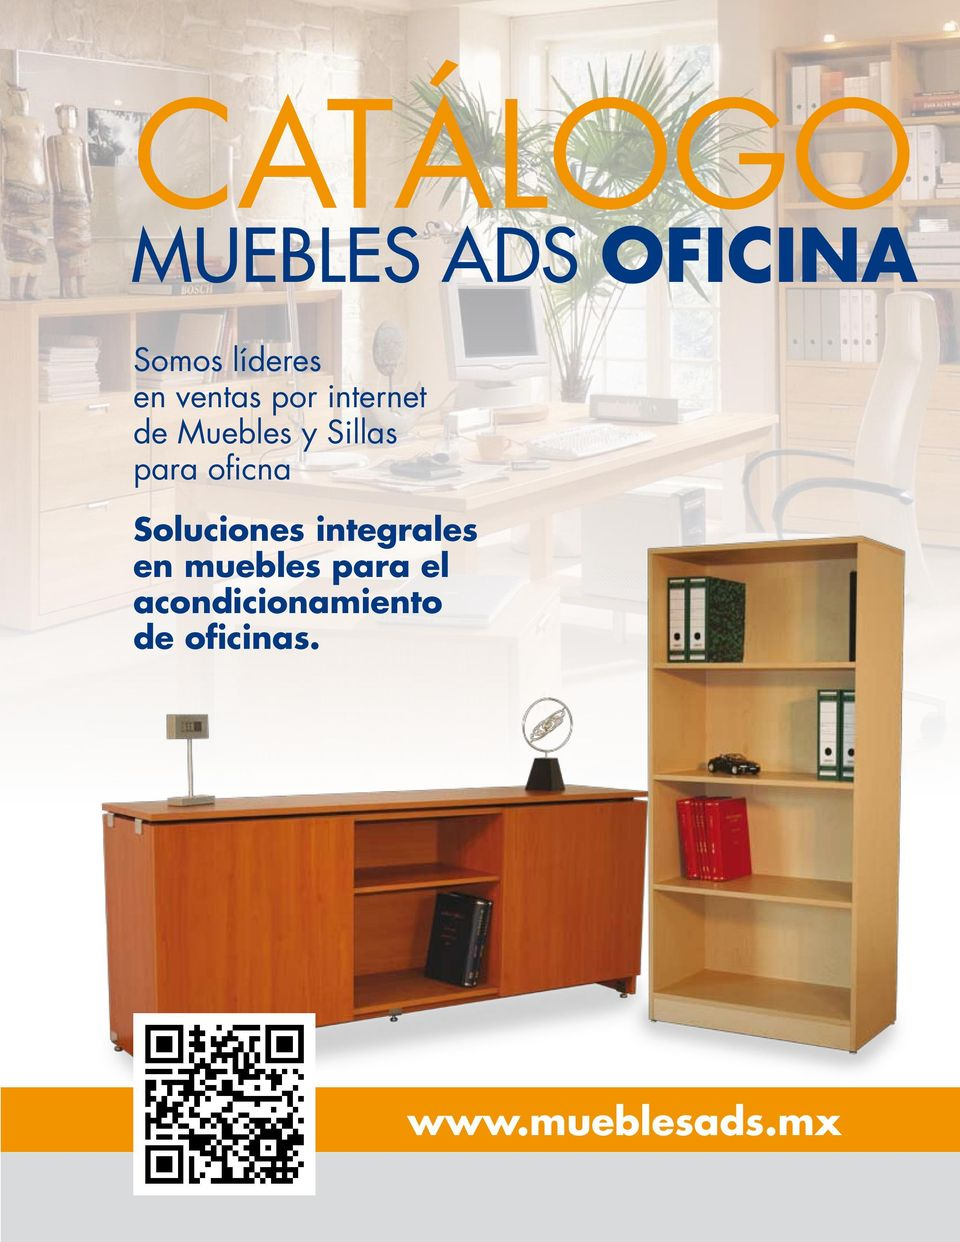 Cat logo muebles ads oficina pdf for Medidas de muebles de oficina pdf